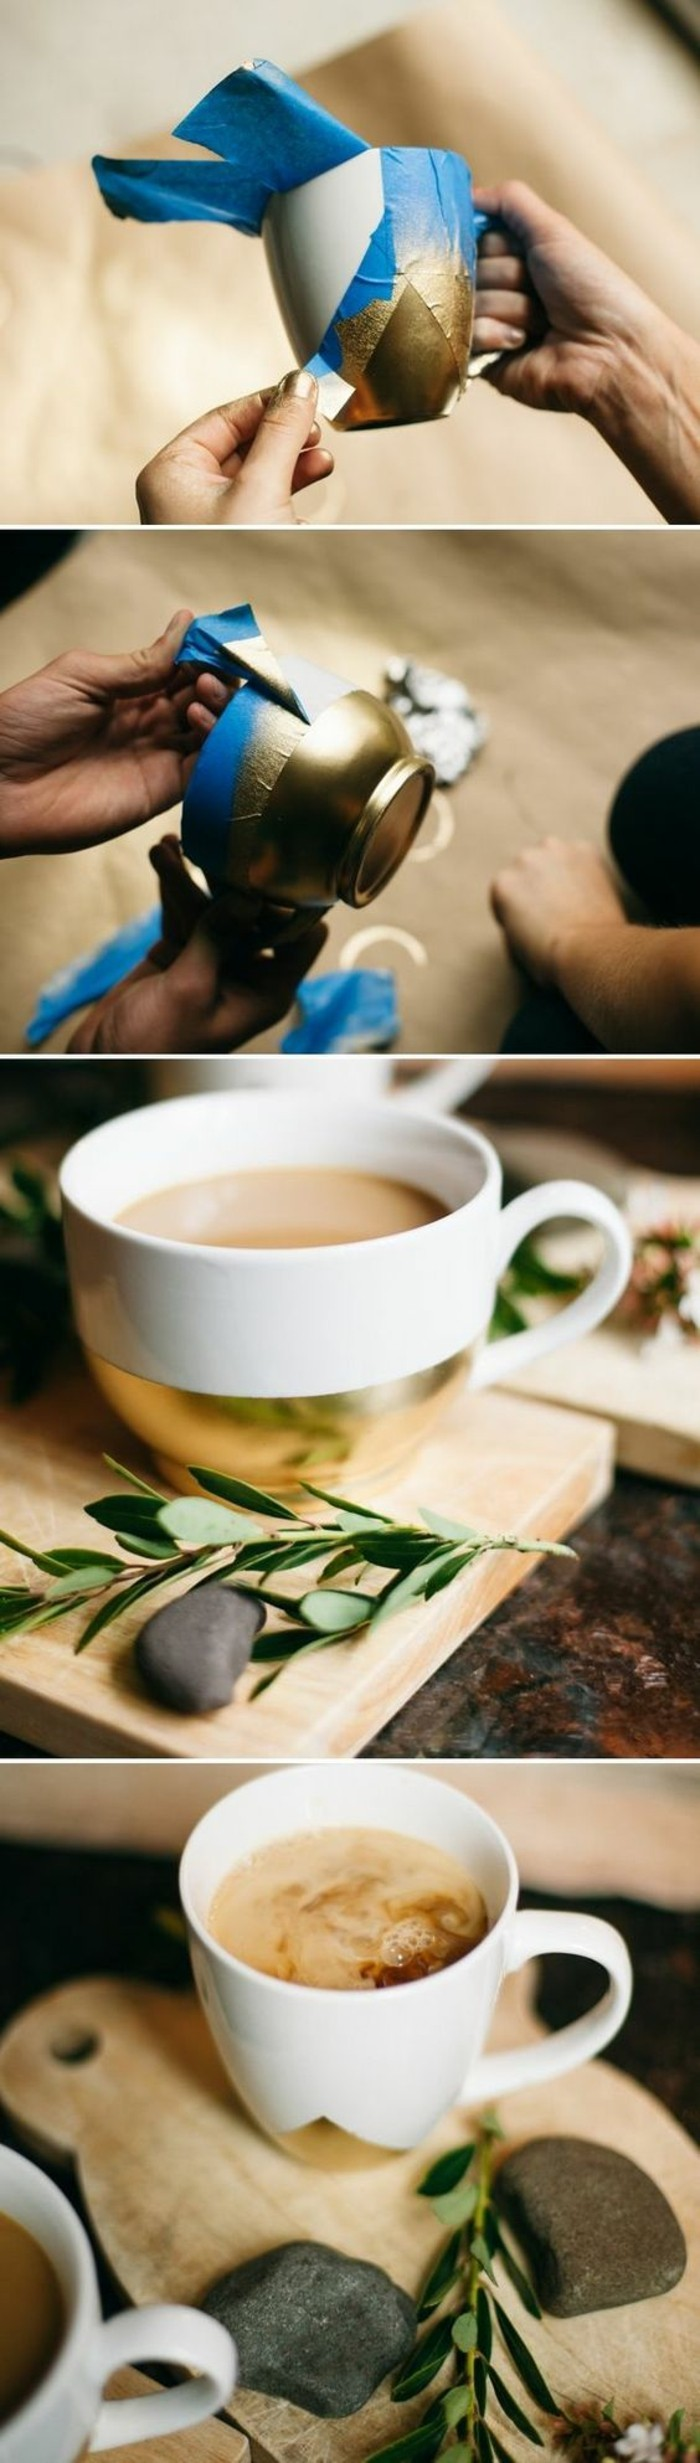 white and gold, coffee mugs, step by step, diy tutorial, creative homemade gifts, wooden board